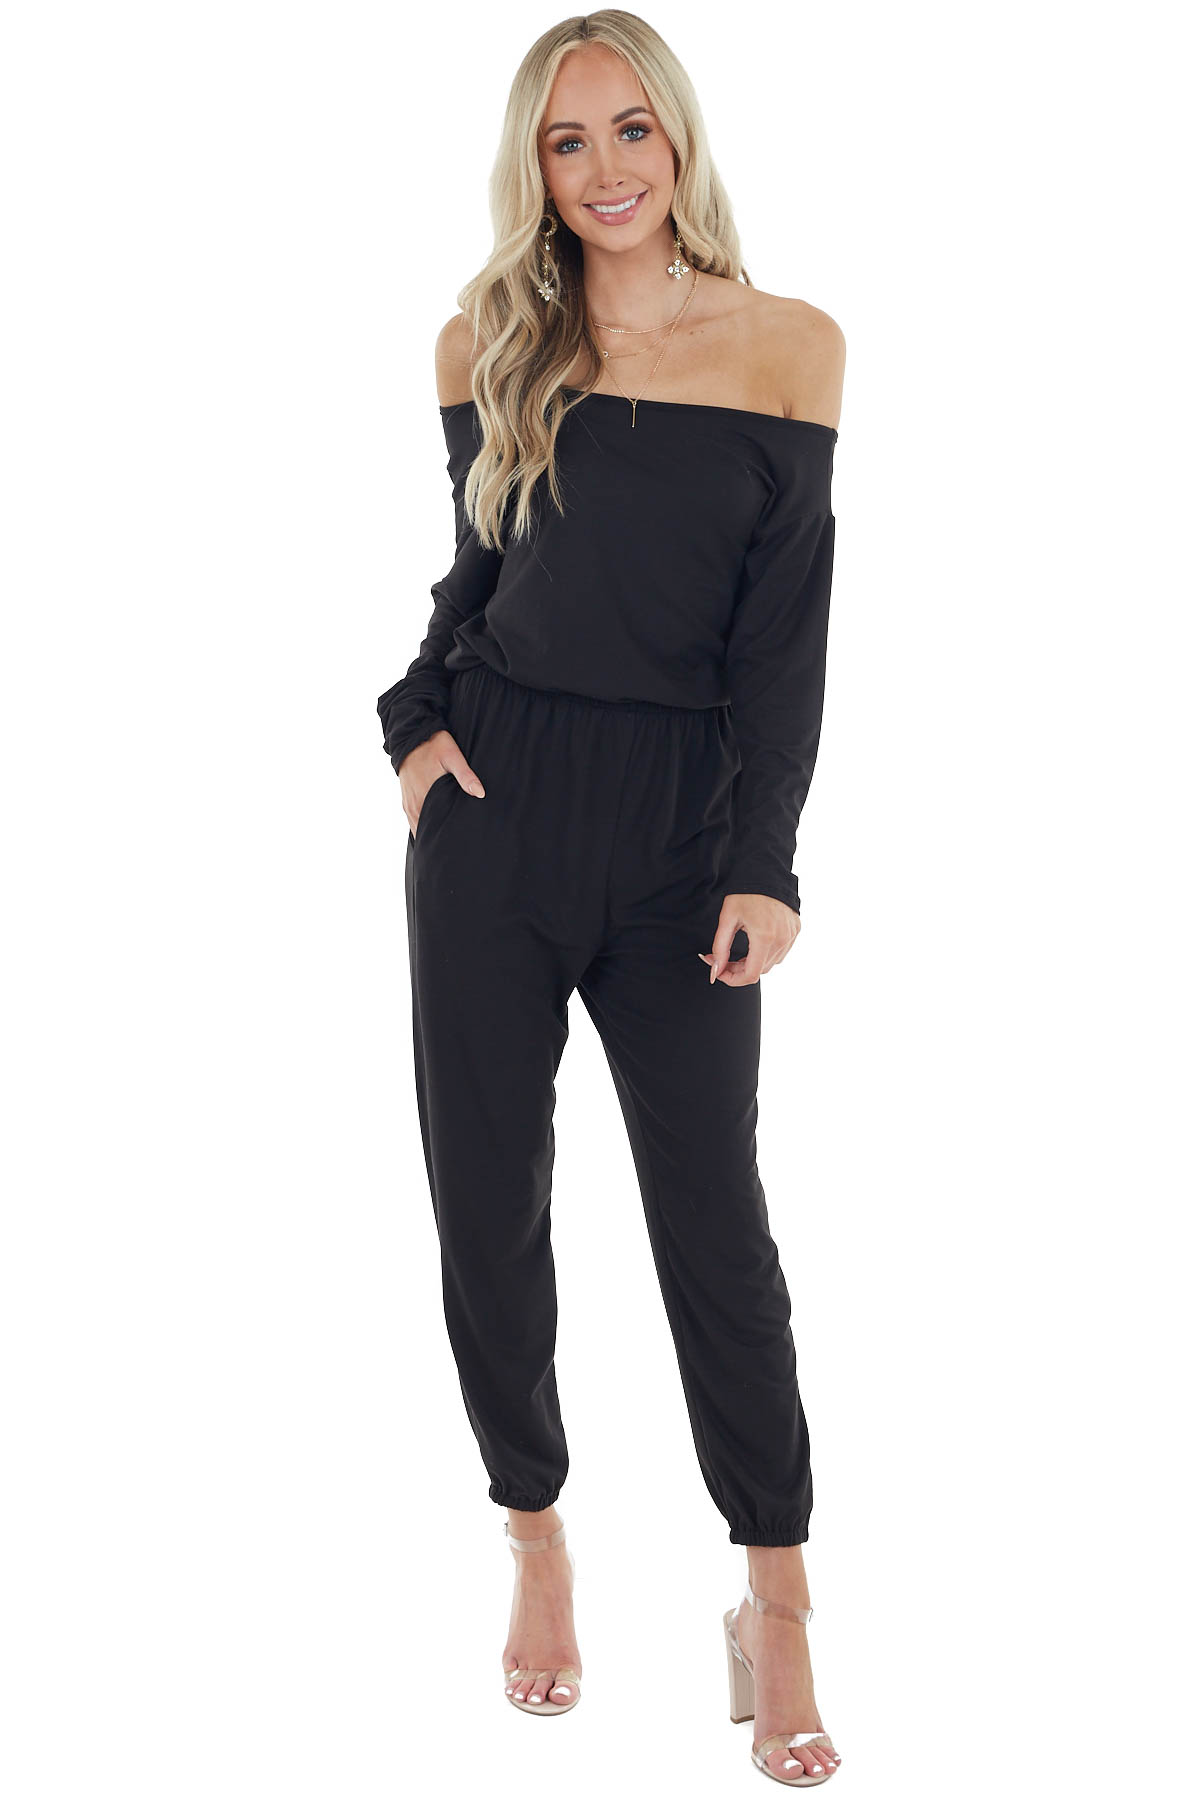 Black Long Sleeve Jumpsuit with Pockets and Boat Neckline